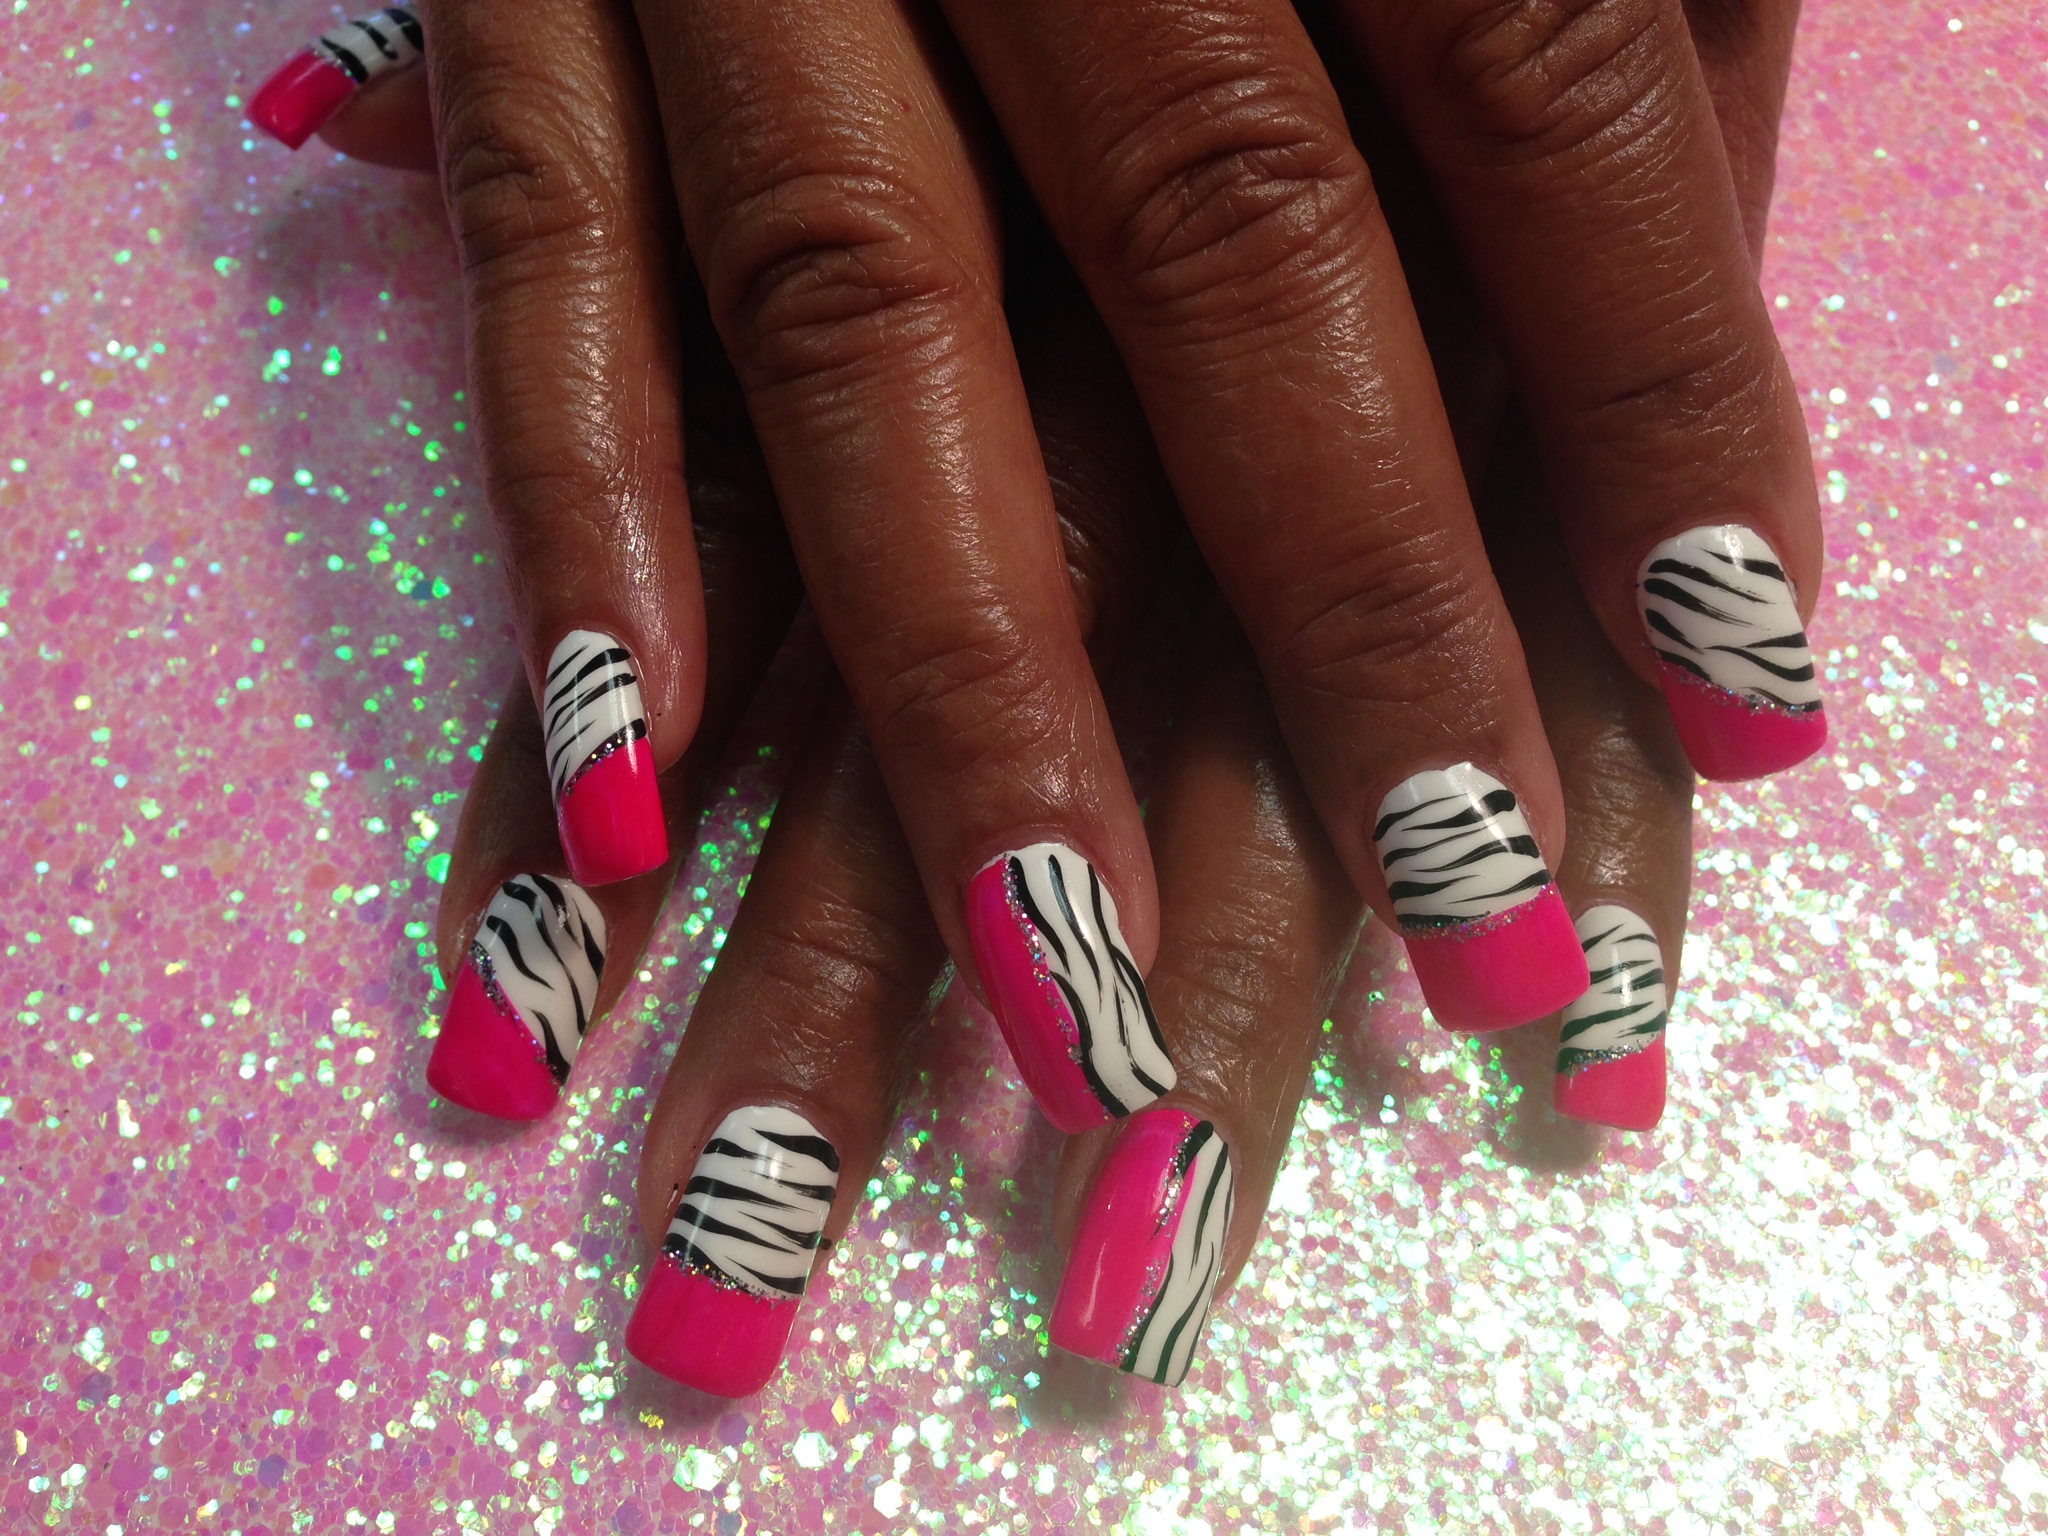 197g shiny bright pink tip straight or angled under line of sparkles topped prinsesfo Choice Image